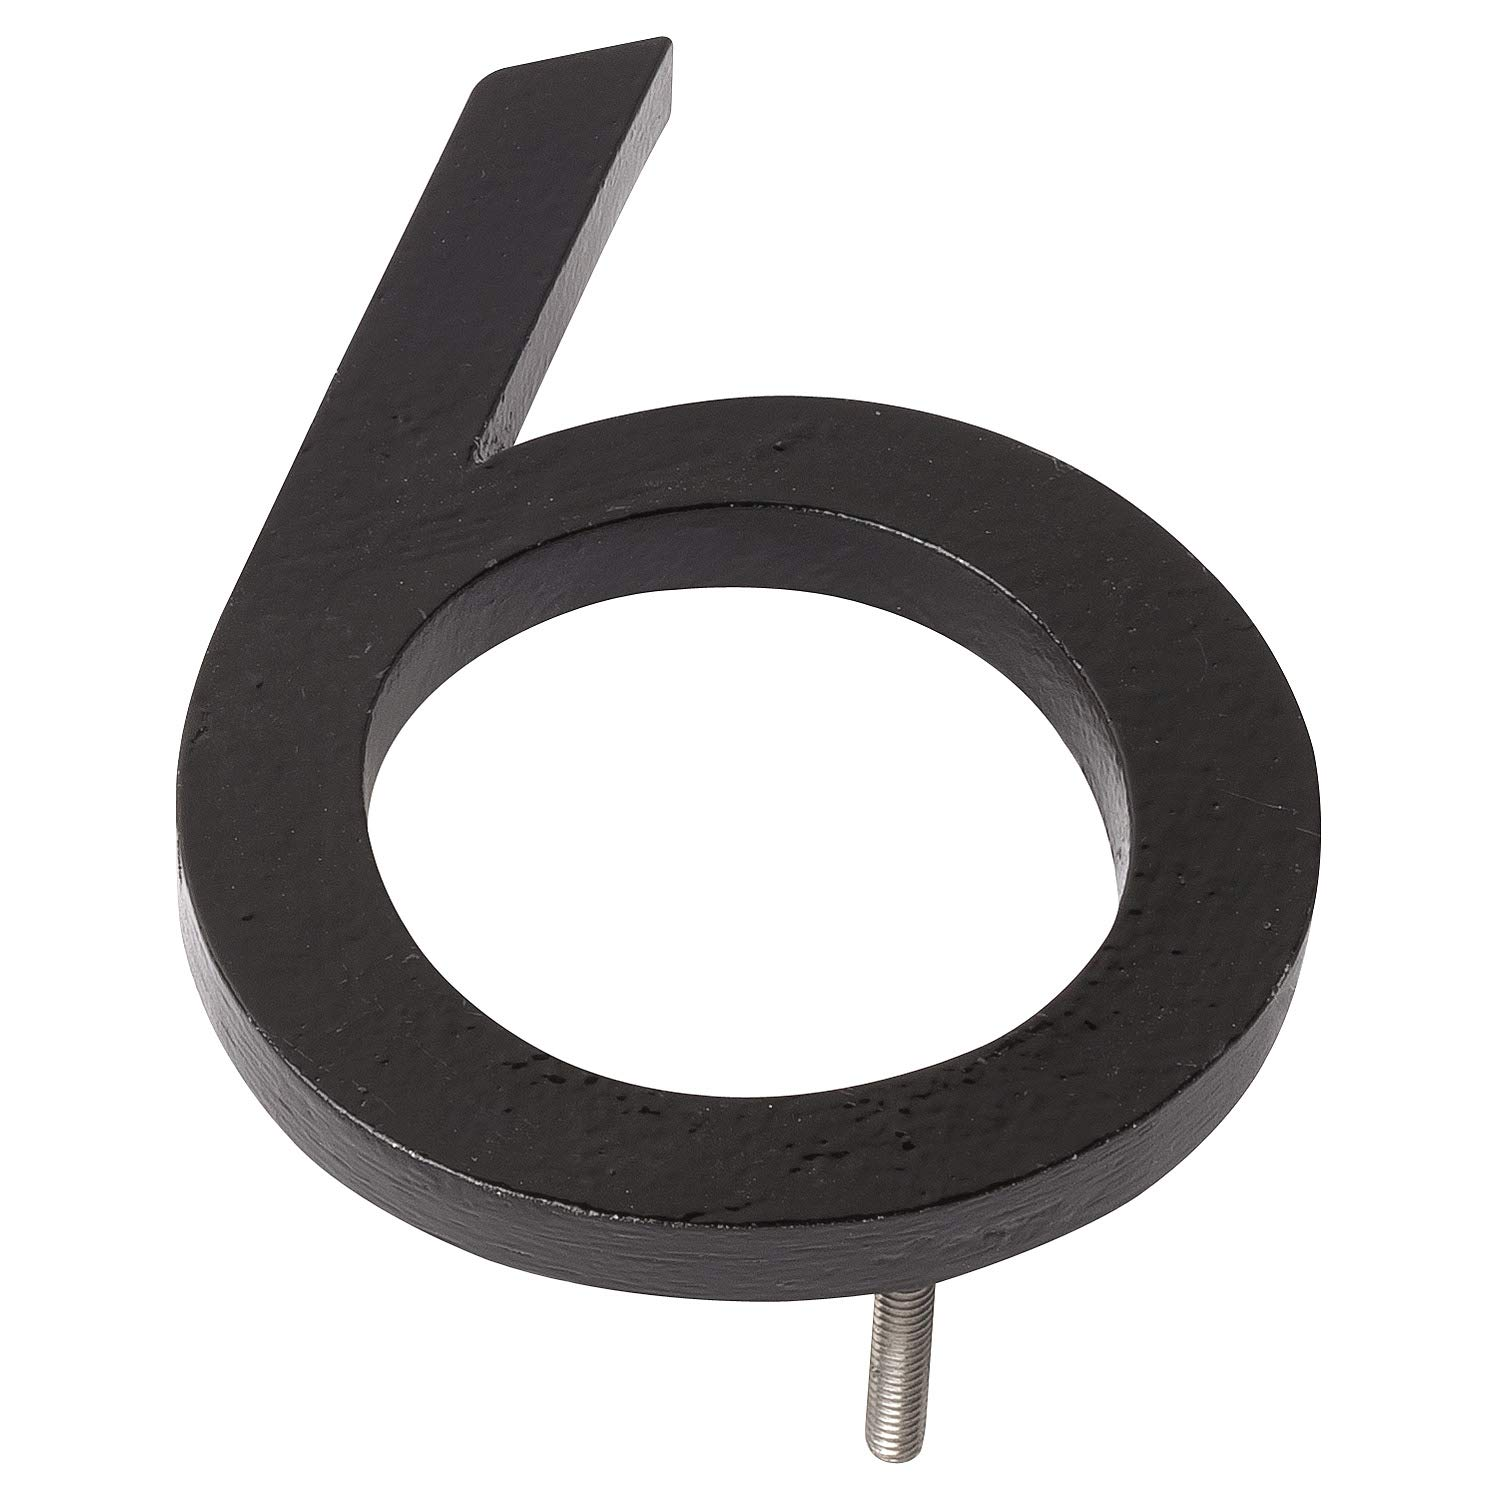 Montague Metal Products MHN-08-6-F-BK1 Floating House Number, 8'' x 5.81'' x 0.375'' Black